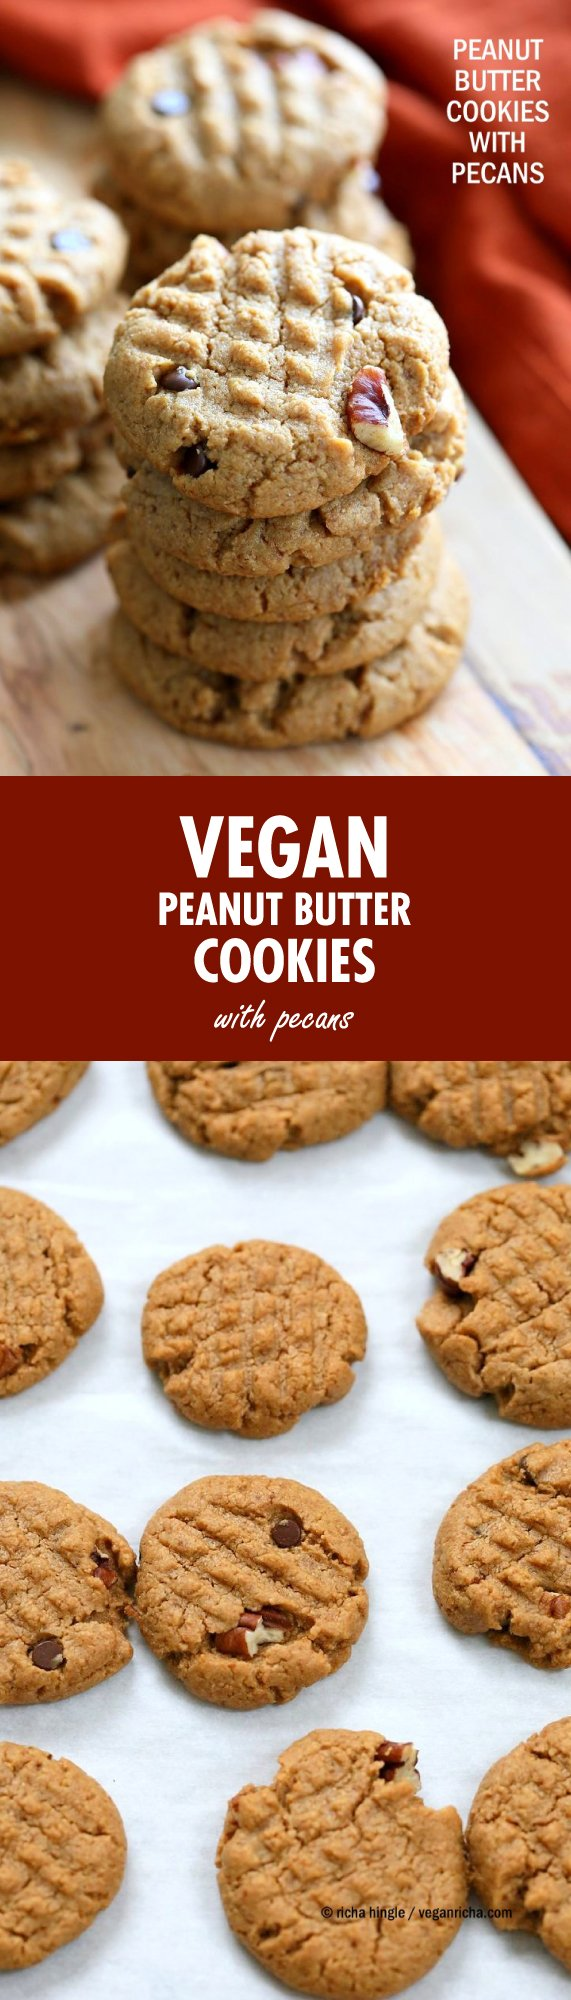 Vegan Peanut Butter Cookies with Pecans and Chocolate chips. Pecans add a buttery flavor to these soft nut Butter cookies. Peanut / Almond Butter Cookies. | VeganRicha.com #vegan #cookie #peanutbutter